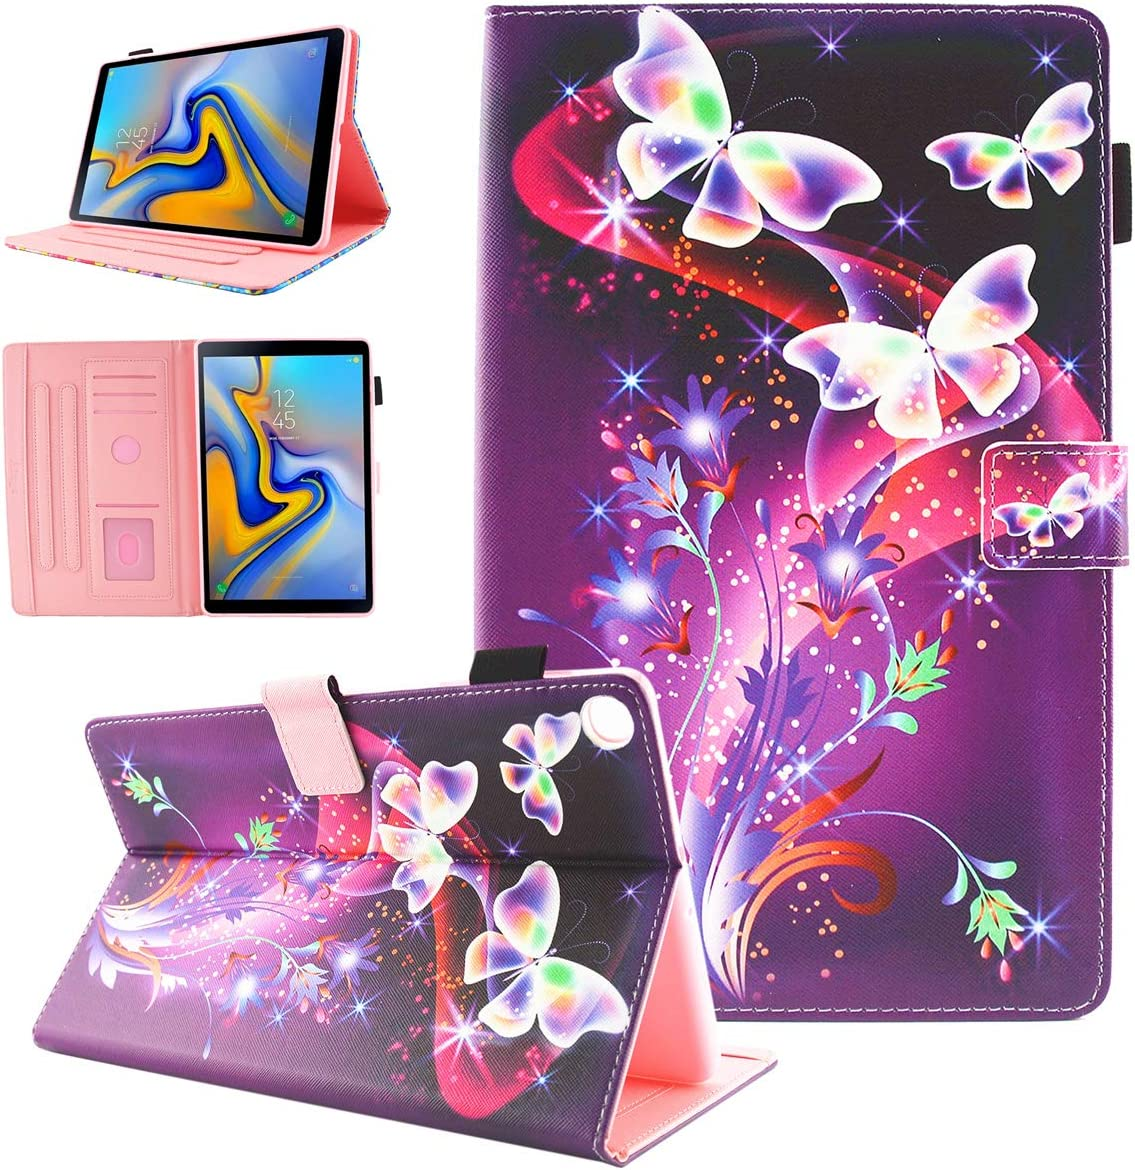 Samsung Galaxy Tab A 10.1 2019 Case, Alugs Multi-Angle Viewing Protective PU Leather Folio Cover for Samsung Galaxy Tab A 10.1 Inch SM-T510/SM-T515 2019 Release Tablet, Buttefly Flower